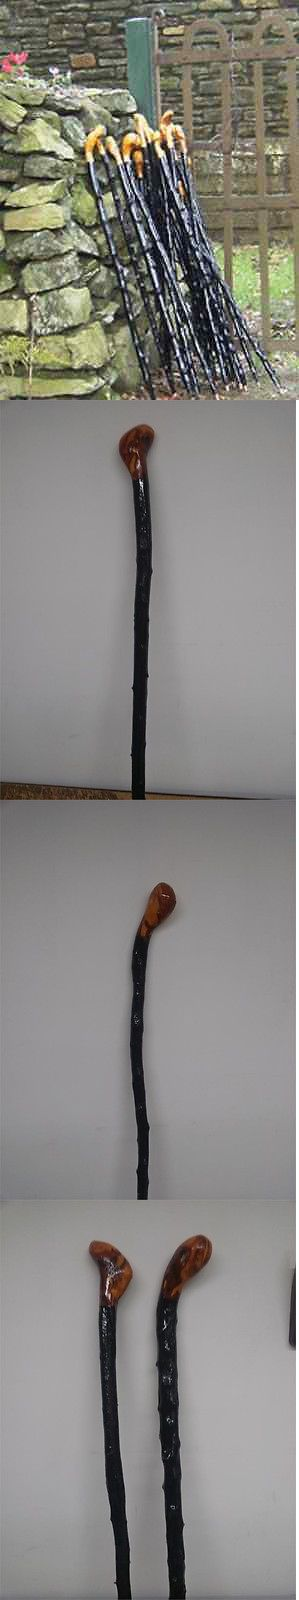 Walking and Trekking Sticks 23809: Irish Blackthorn Walking Stick - Hand Carved Genuine Wood From Ireland BUY IT NOW ONLY: $69.95